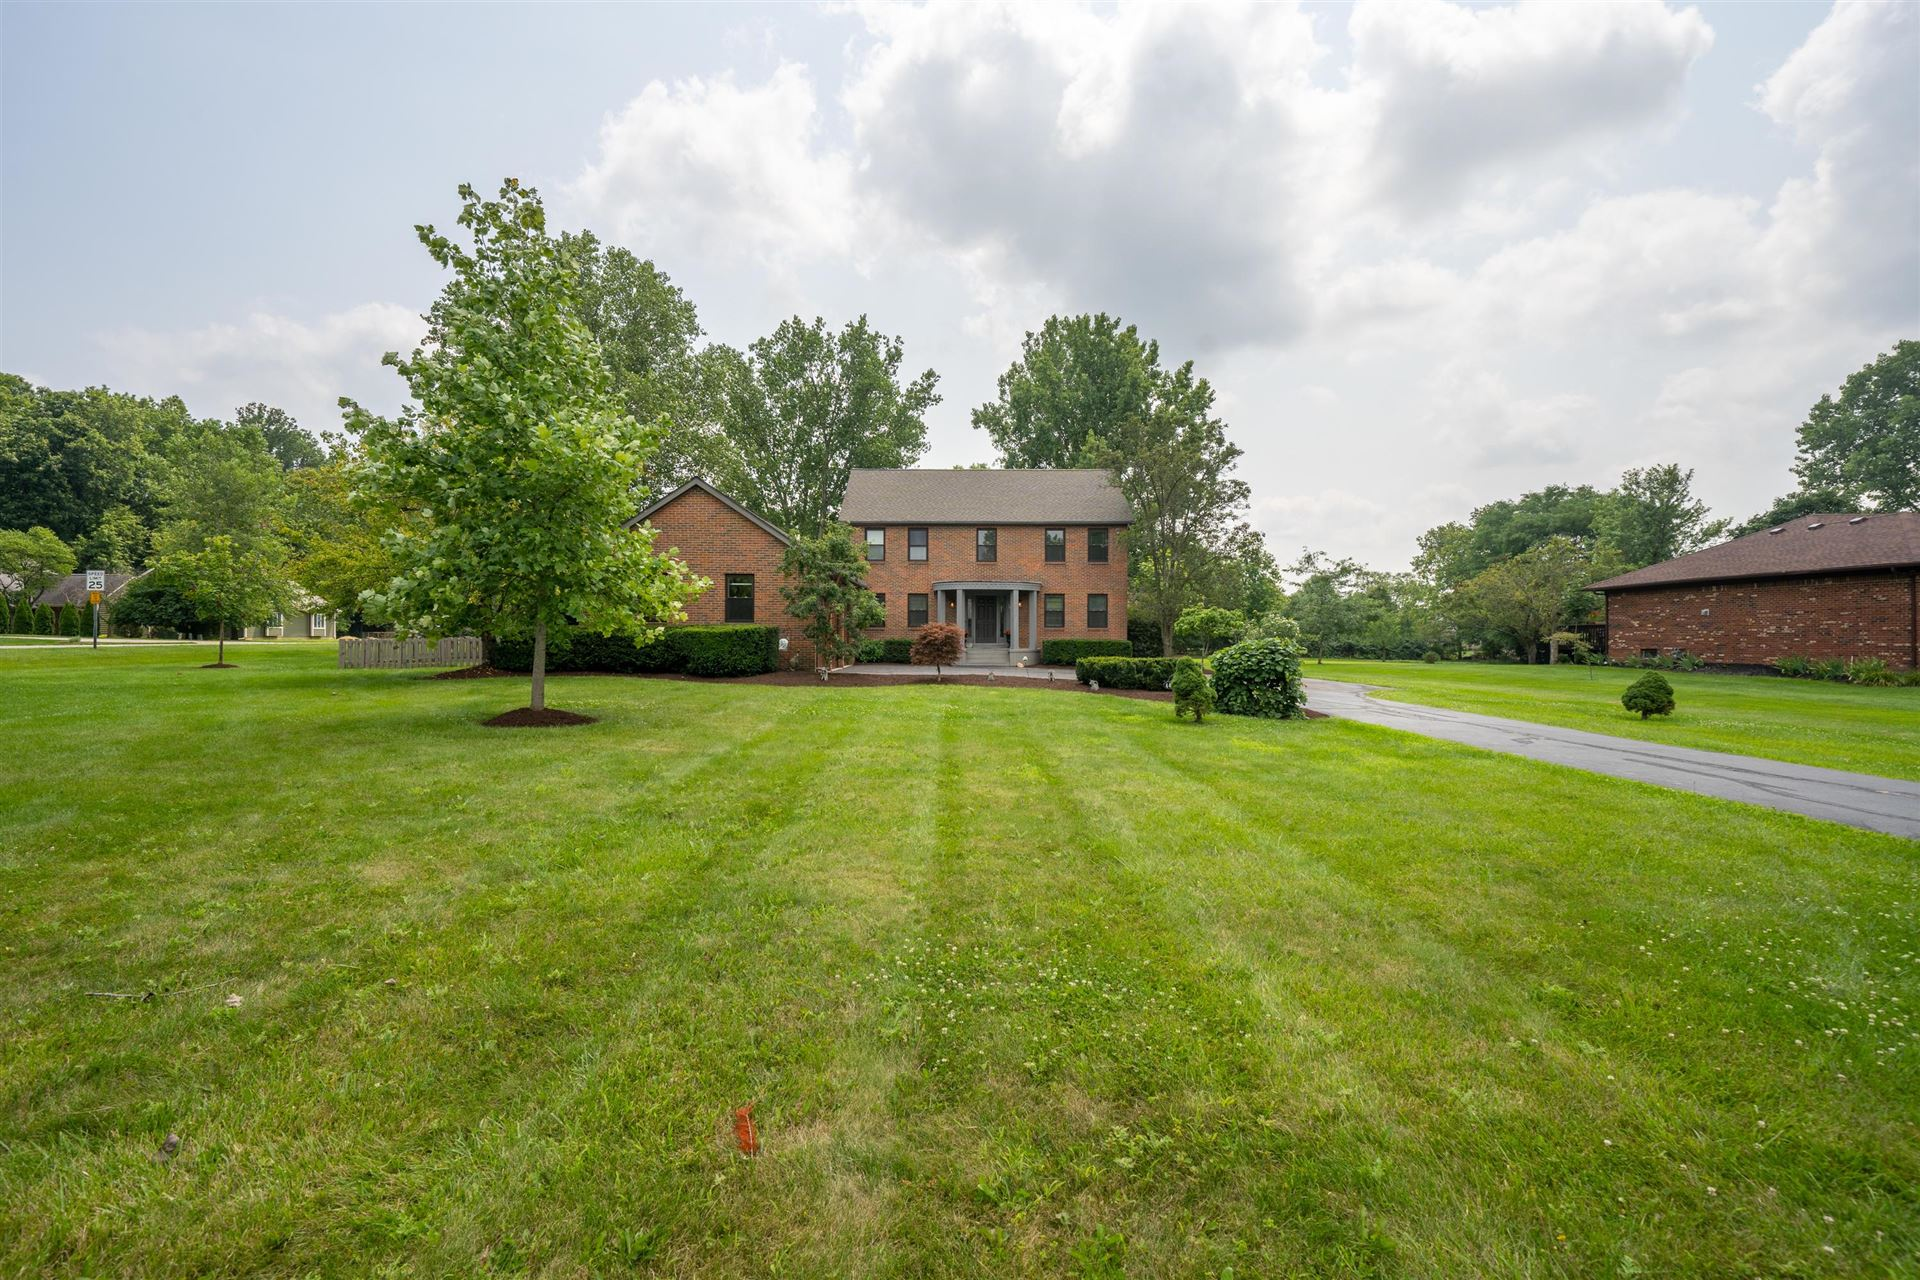 Photo of 4475 Millwater Drive, Powell, OH 43065 (MLS # 221028613)